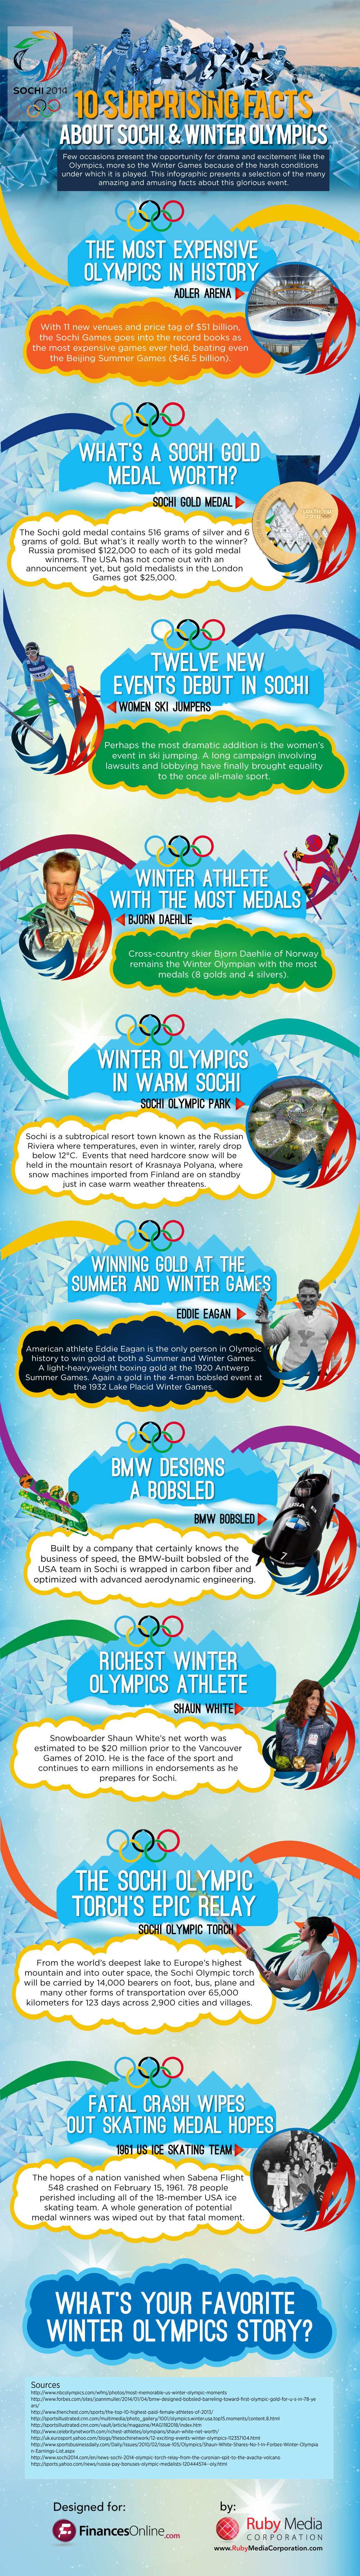 2014 Sochi Winter Games: What Athlete Has The Most Medals Ever and 10 Other Amazing Facts